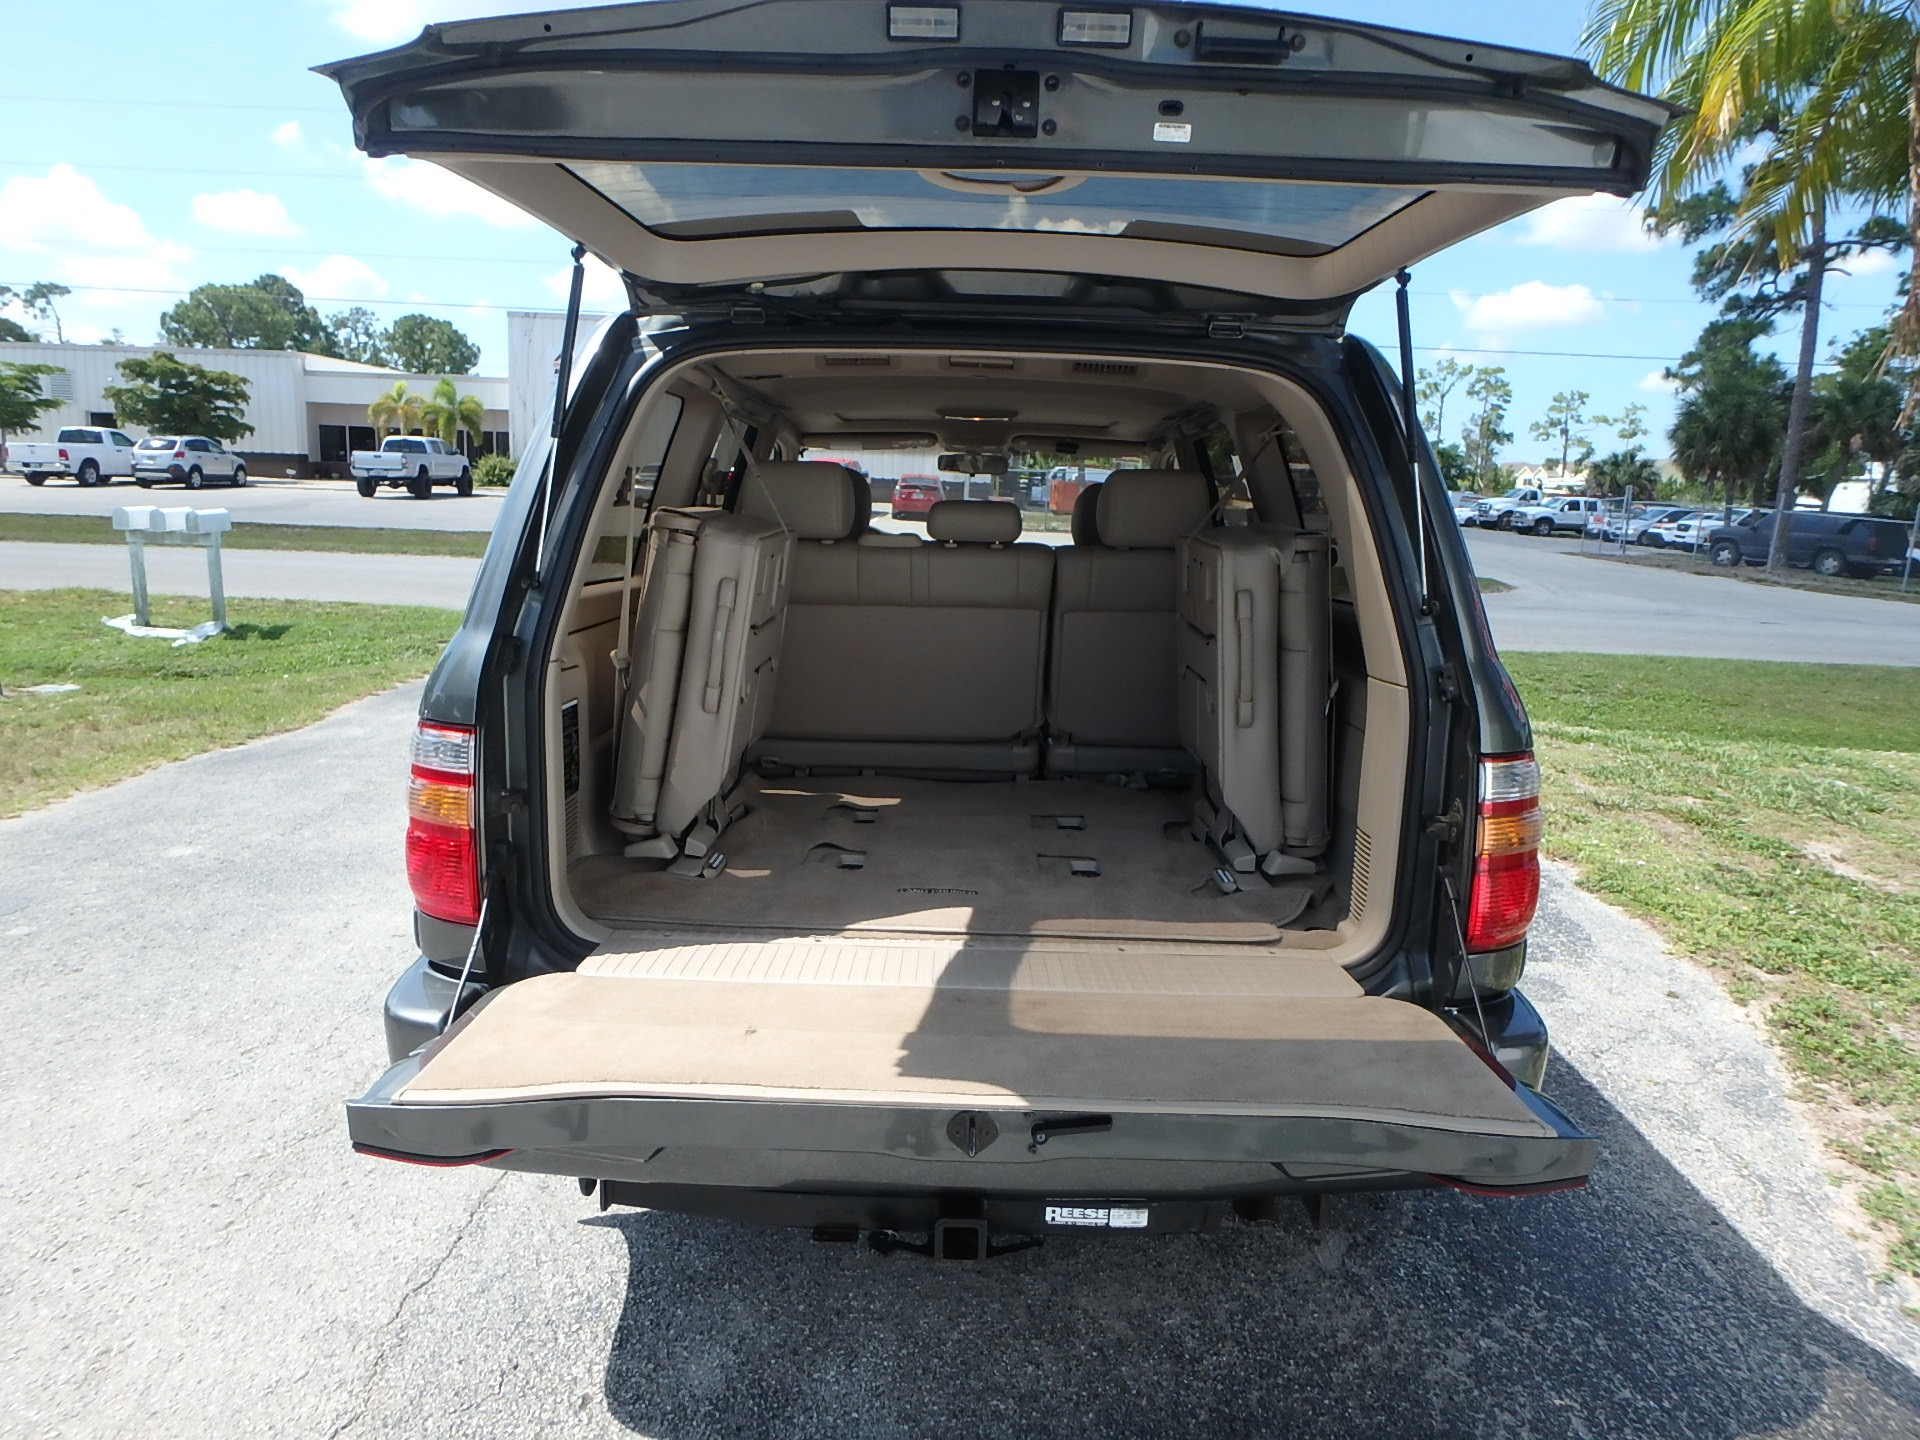 used 2000 toyota land cruiser for sale 13 500 rose motorsports inc stock 2336 used 2000 toyota land cruiser for sale